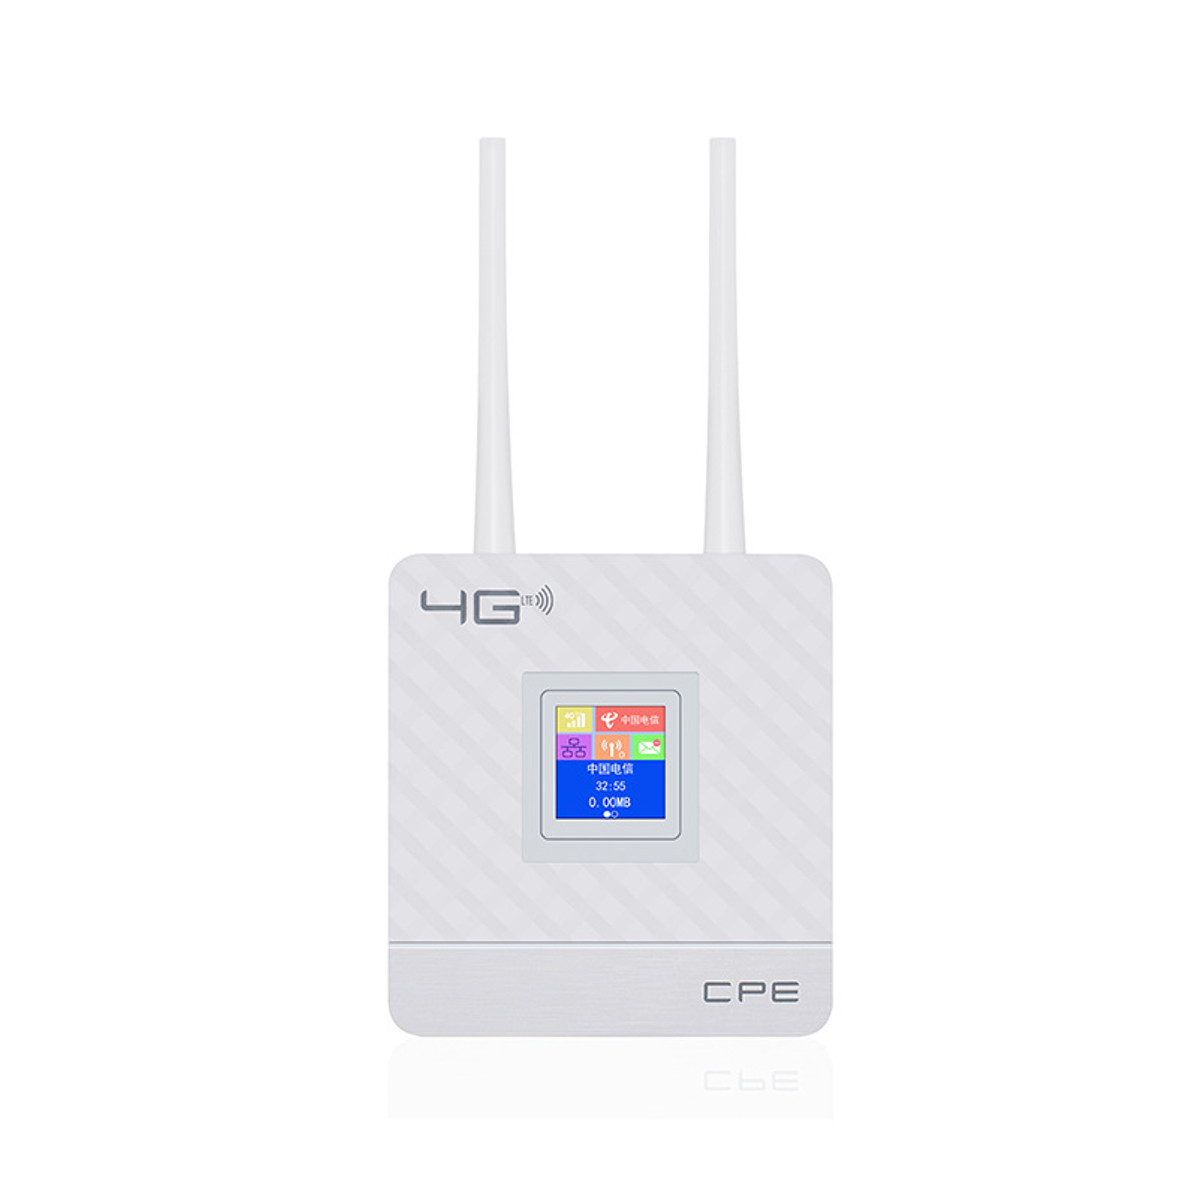 2.4G 4G LTE Wifi Router CPE Router Support for 20 Users with SIM Card Slot Wirelss Wired Router